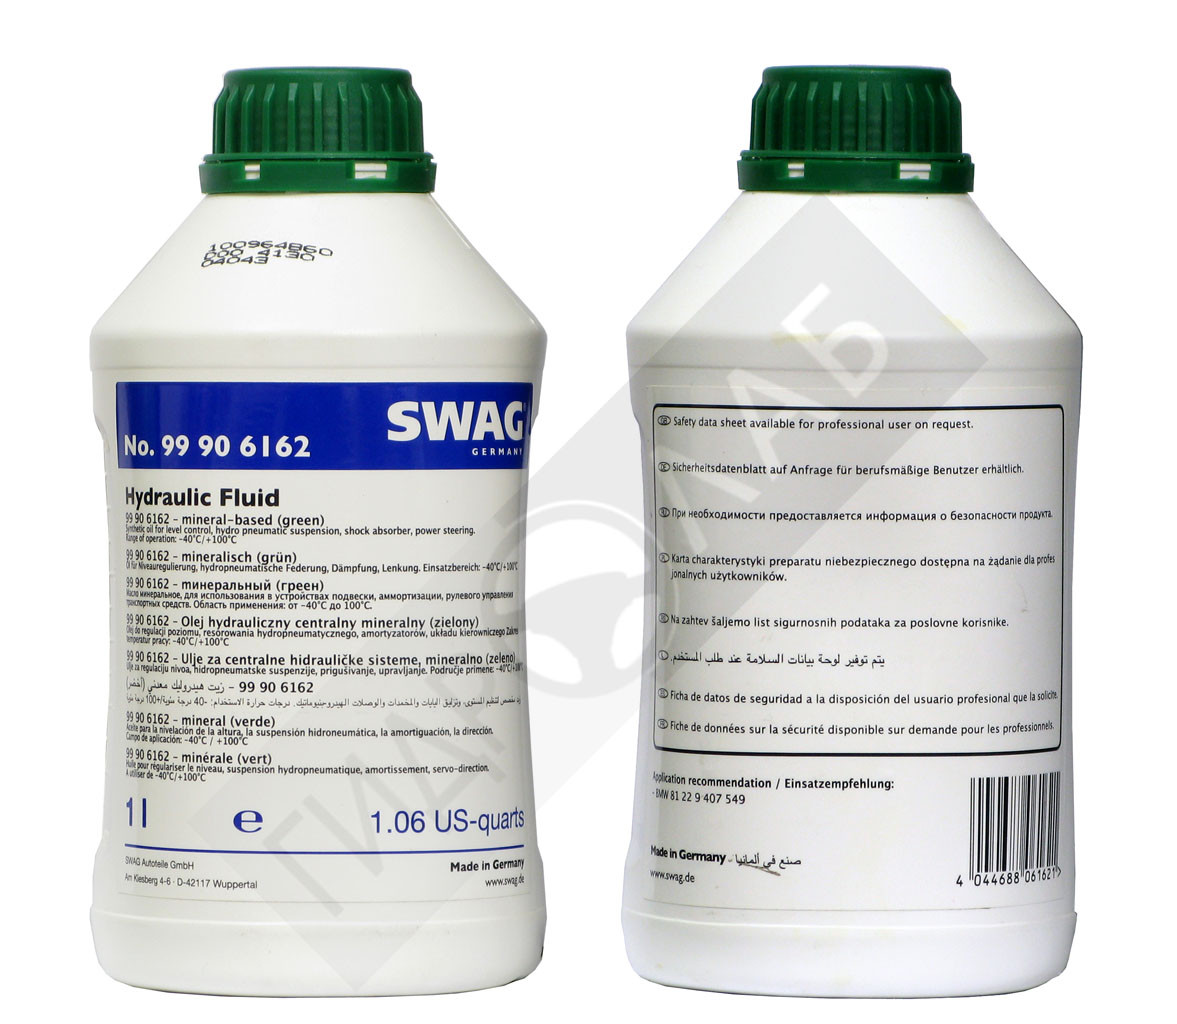 SWAG 99 90 6162 Hydraulic Fluid Масло для использов. в аммортизации рулевого управления 1л